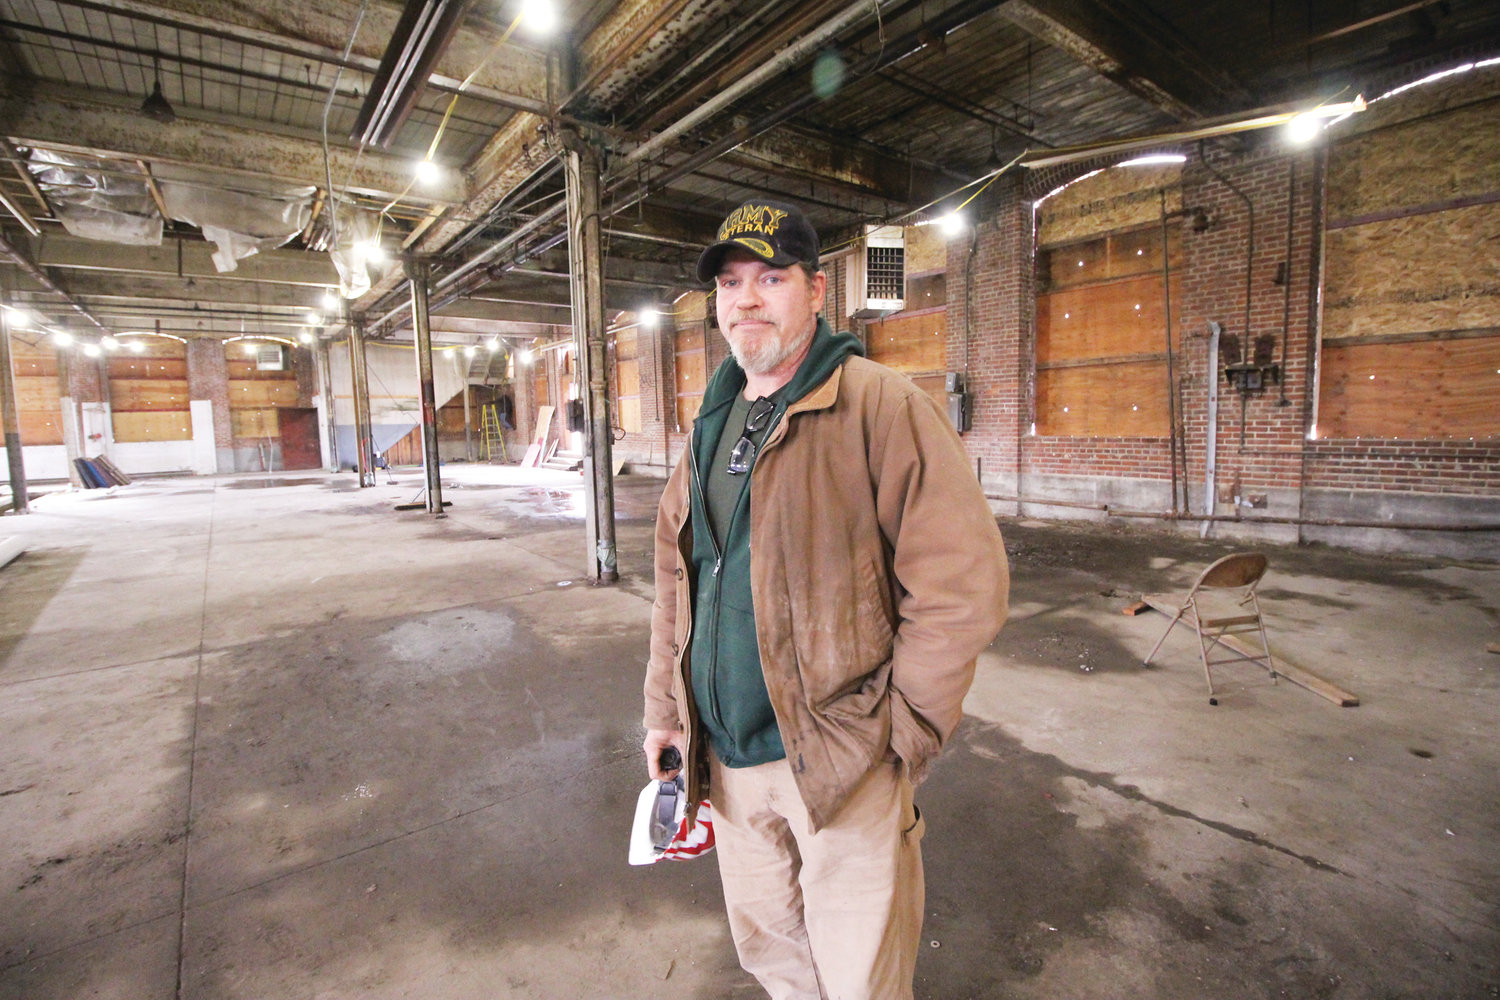 GOOD BONES: James Switzer, foreman for Case Construction, says the saw tooth building was carefully built and maintains its integrity.